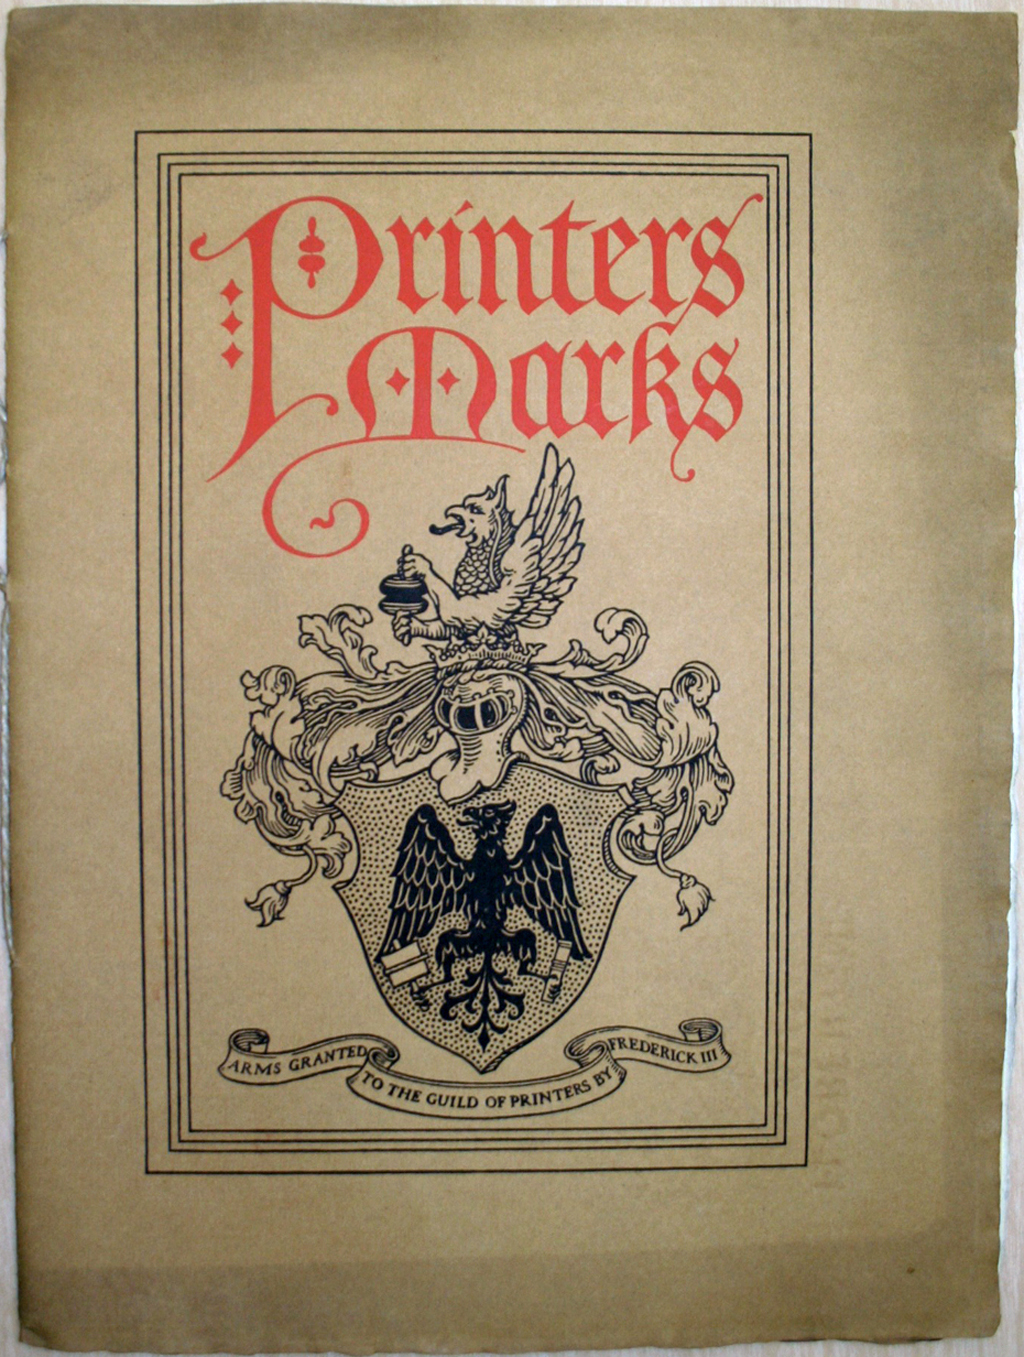 Printers Marks catalogue cover (c. 1919). Design and lettering by Frederic W. Goudy.